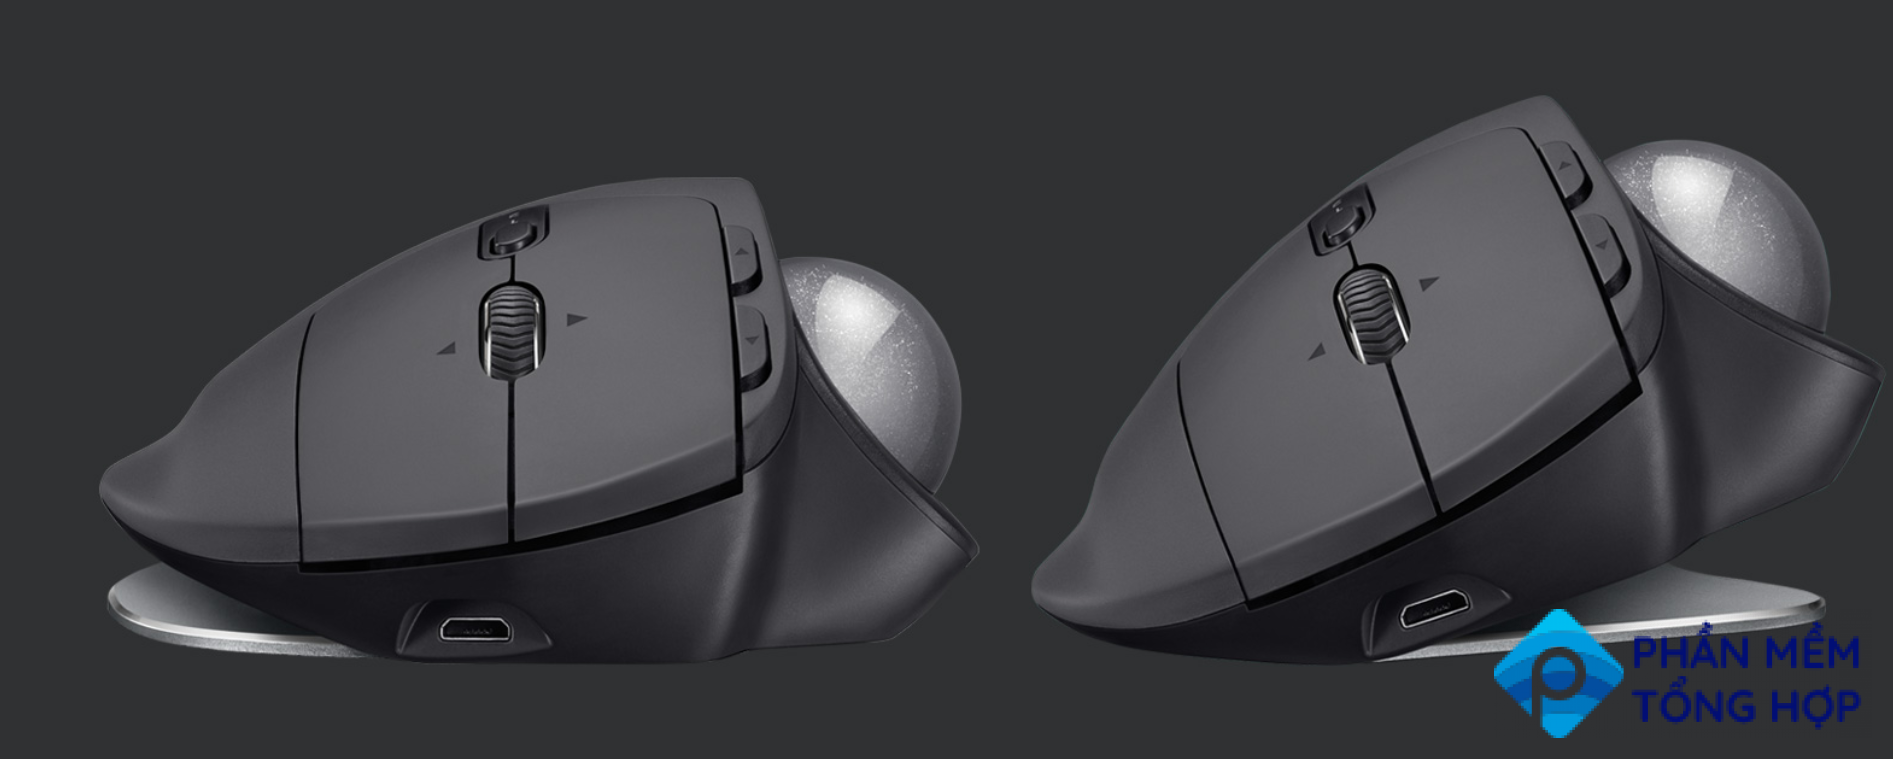 An image showing the two available angles on the MX Ergo